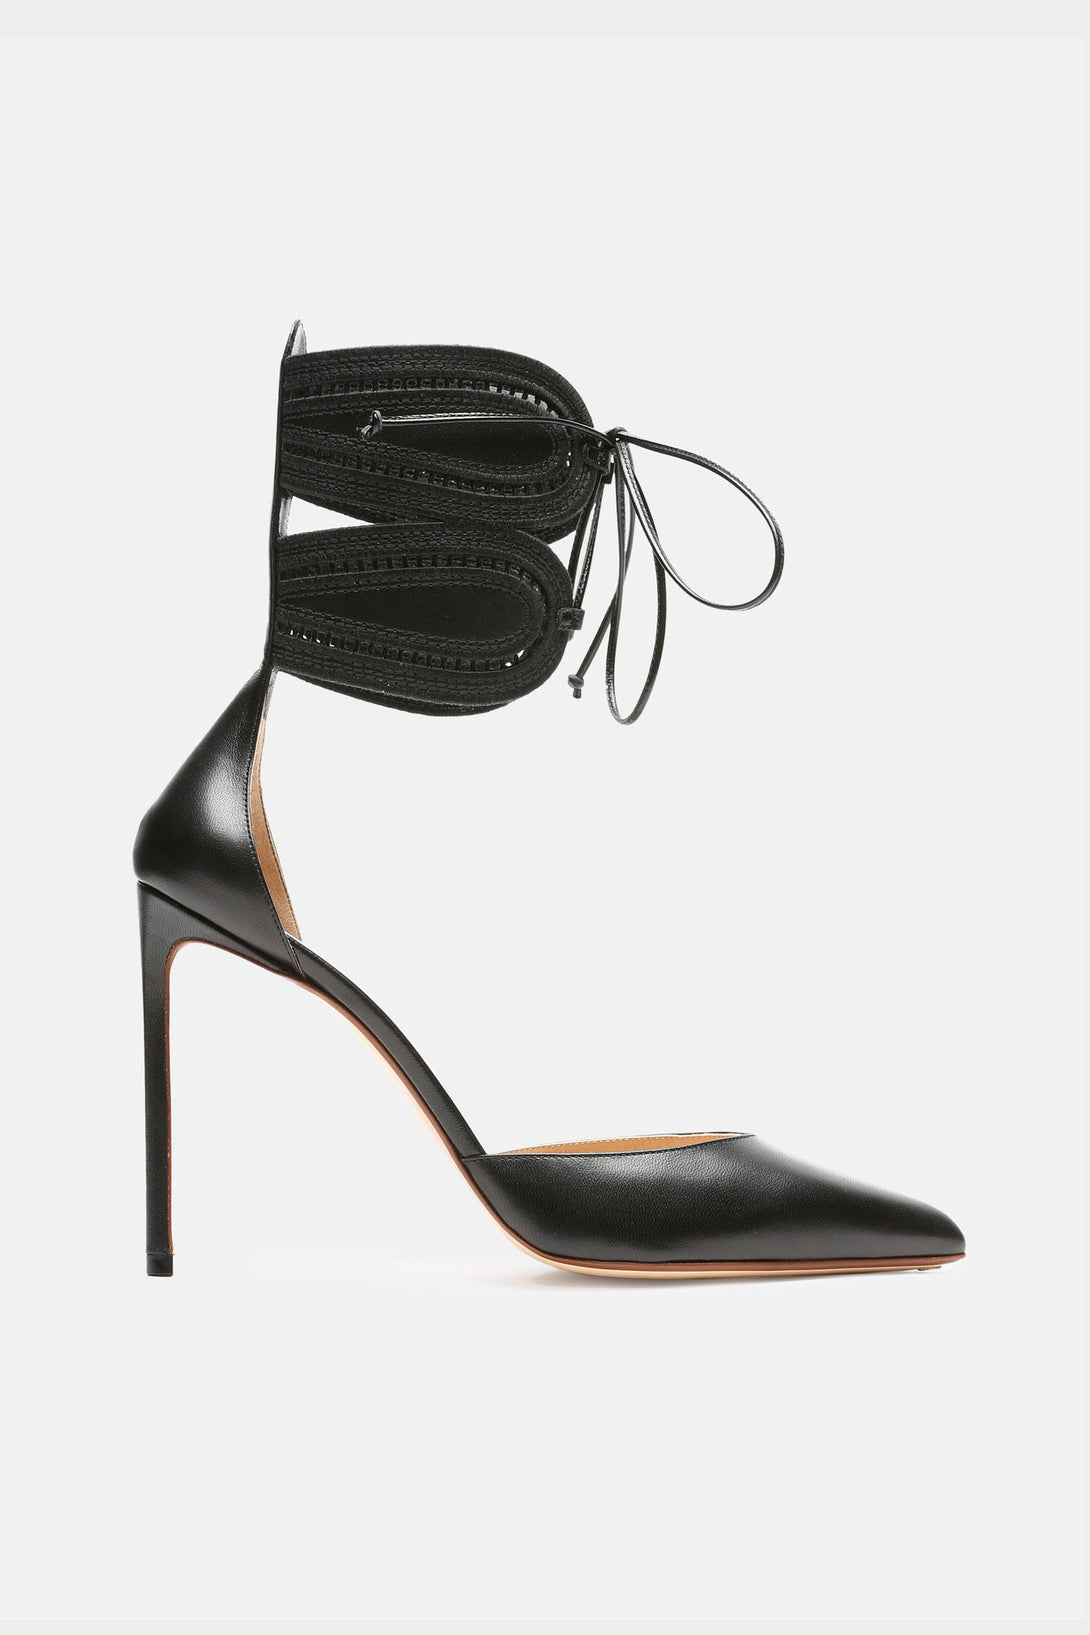 Ankle-Cuff Pump - Black